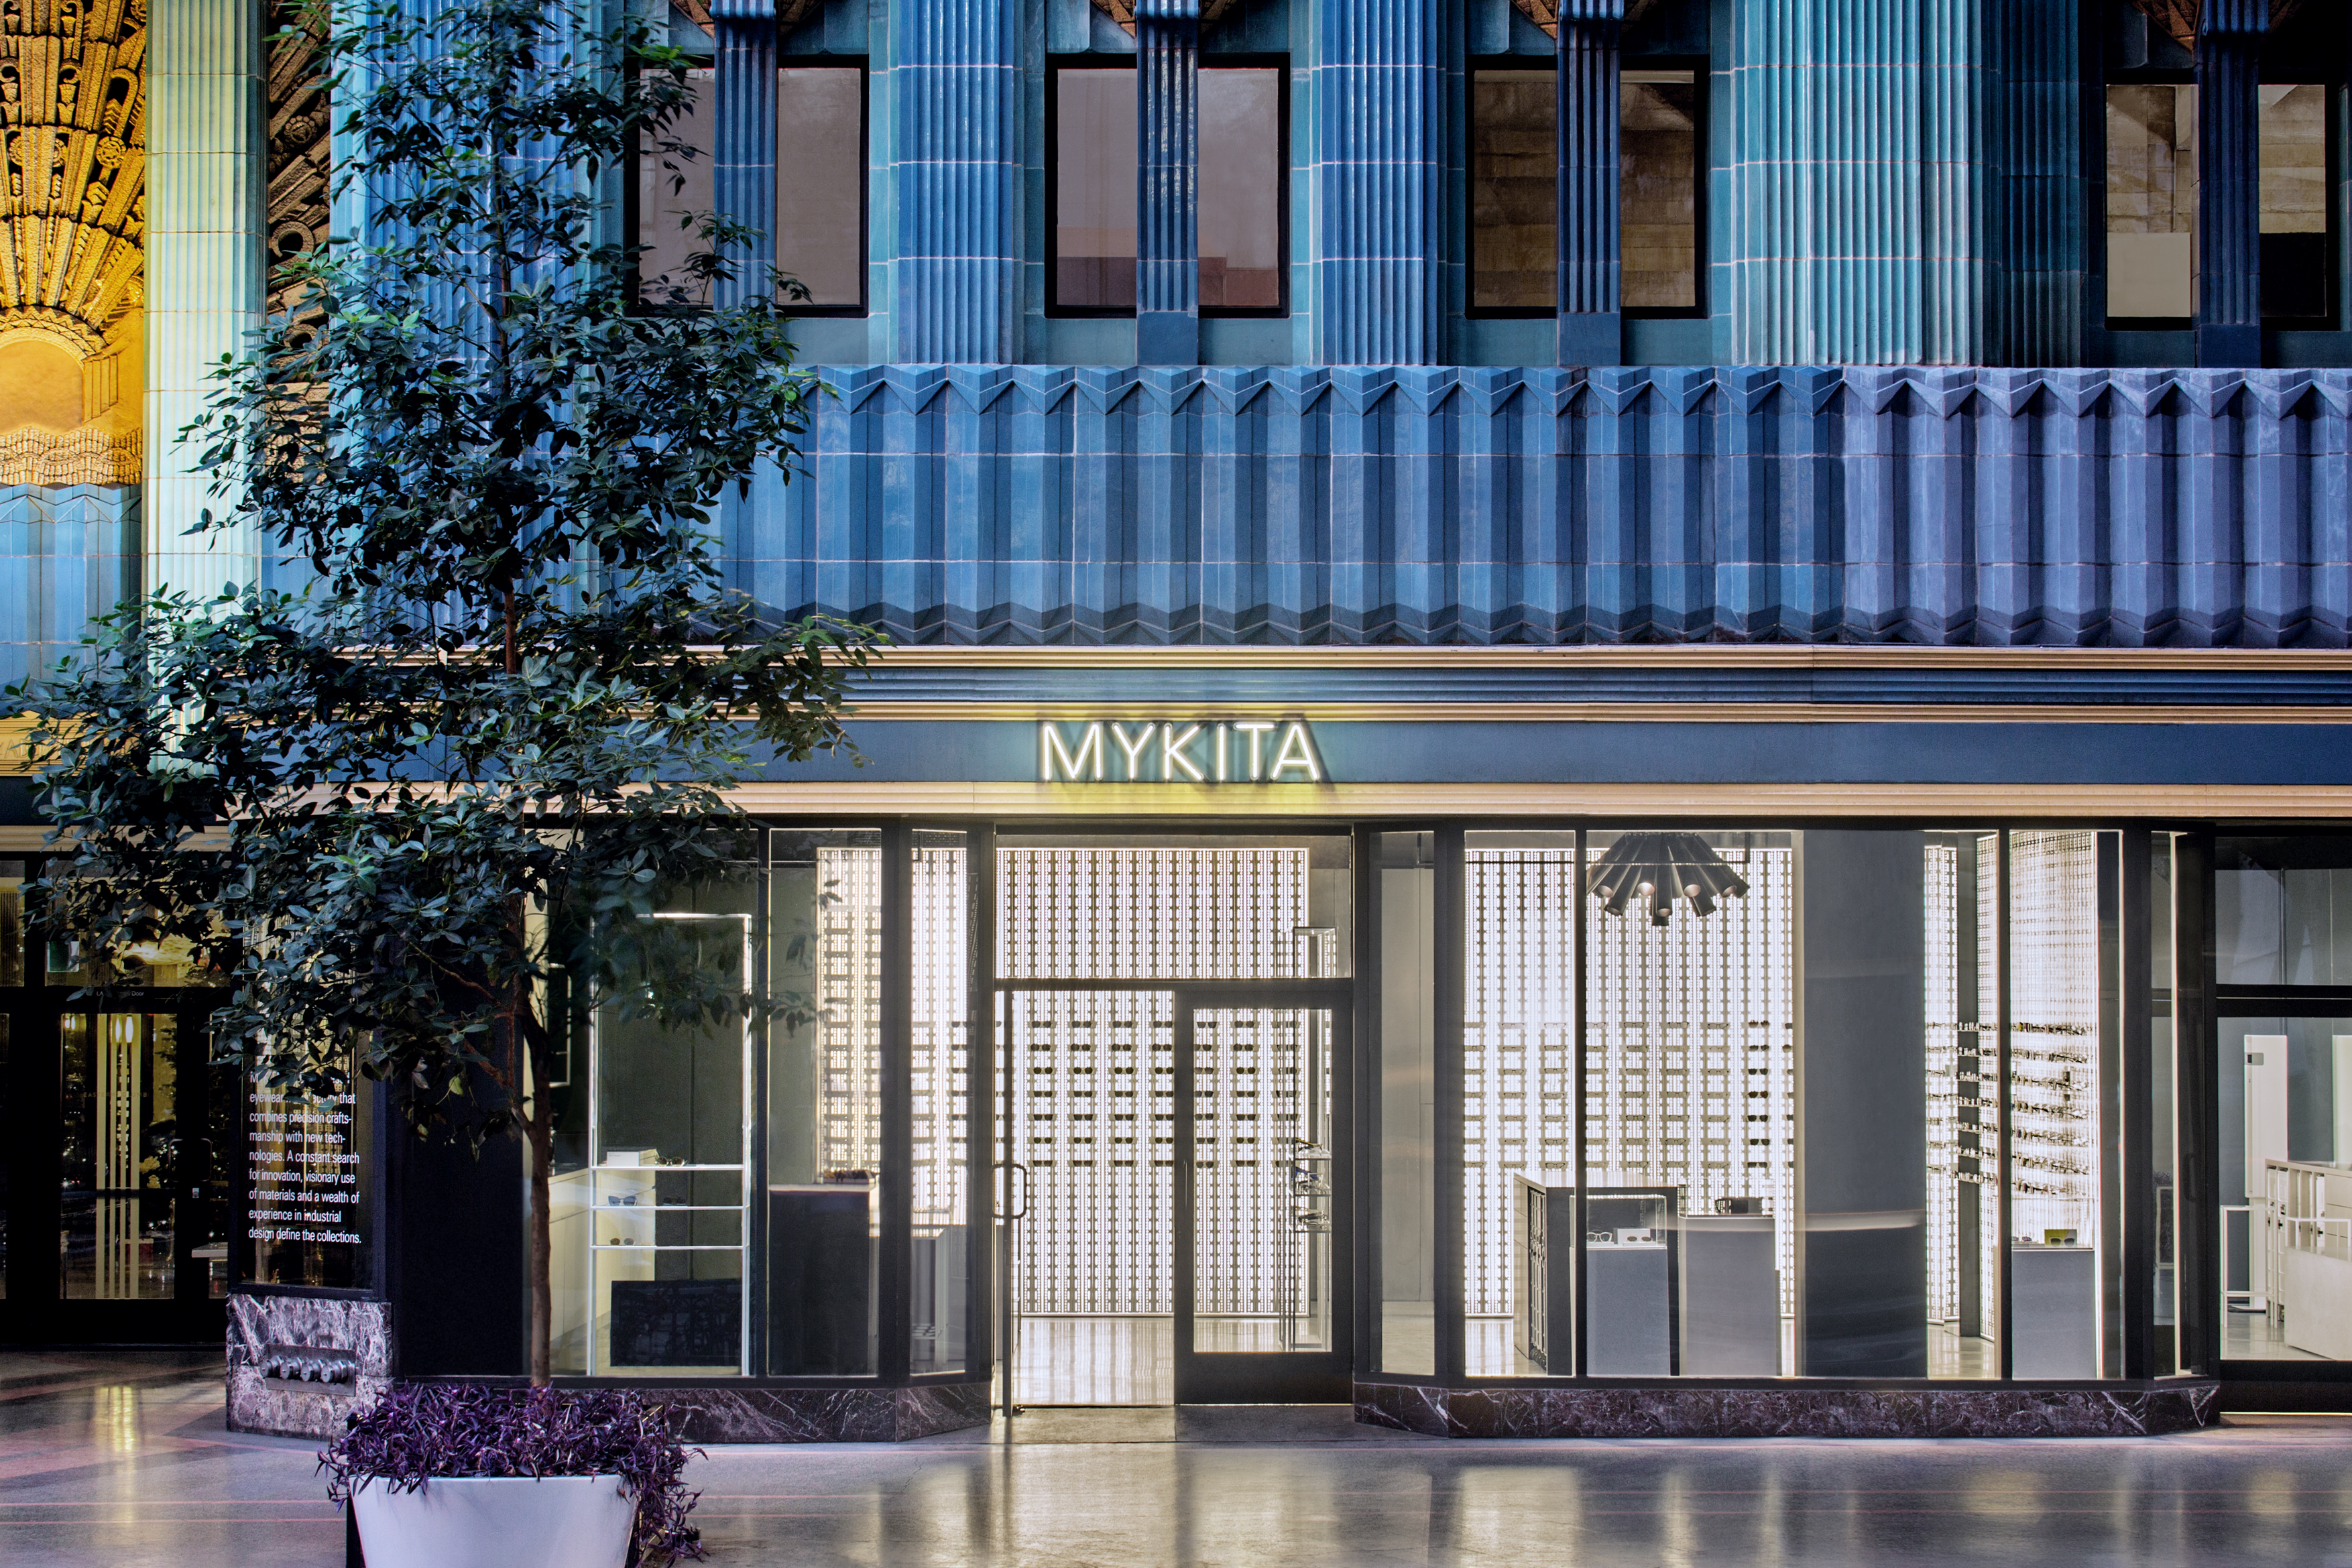 The MYKITA Shop Los Angeles in the Eastern Columbia Building, Downtown L.A.